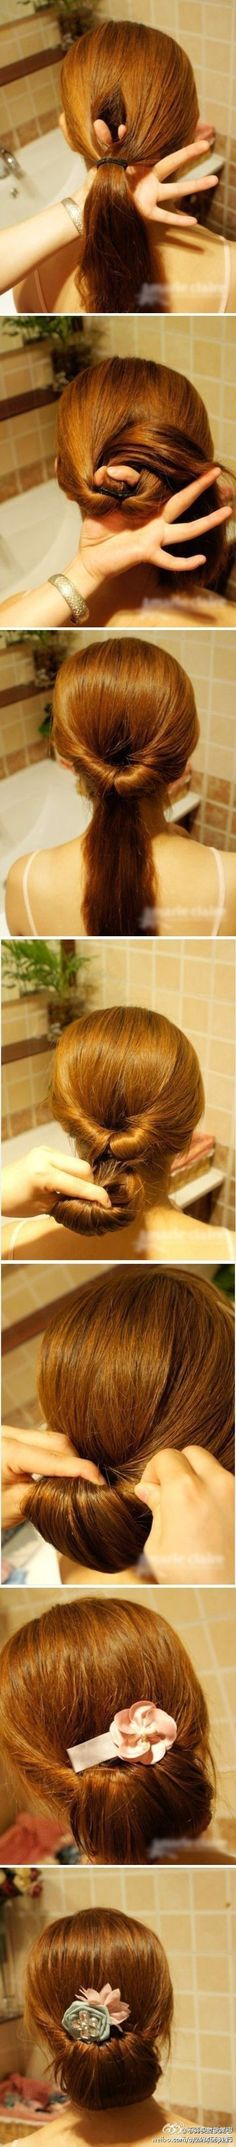 cute and easy updo. i can't wait until my hair is long enough to do this!